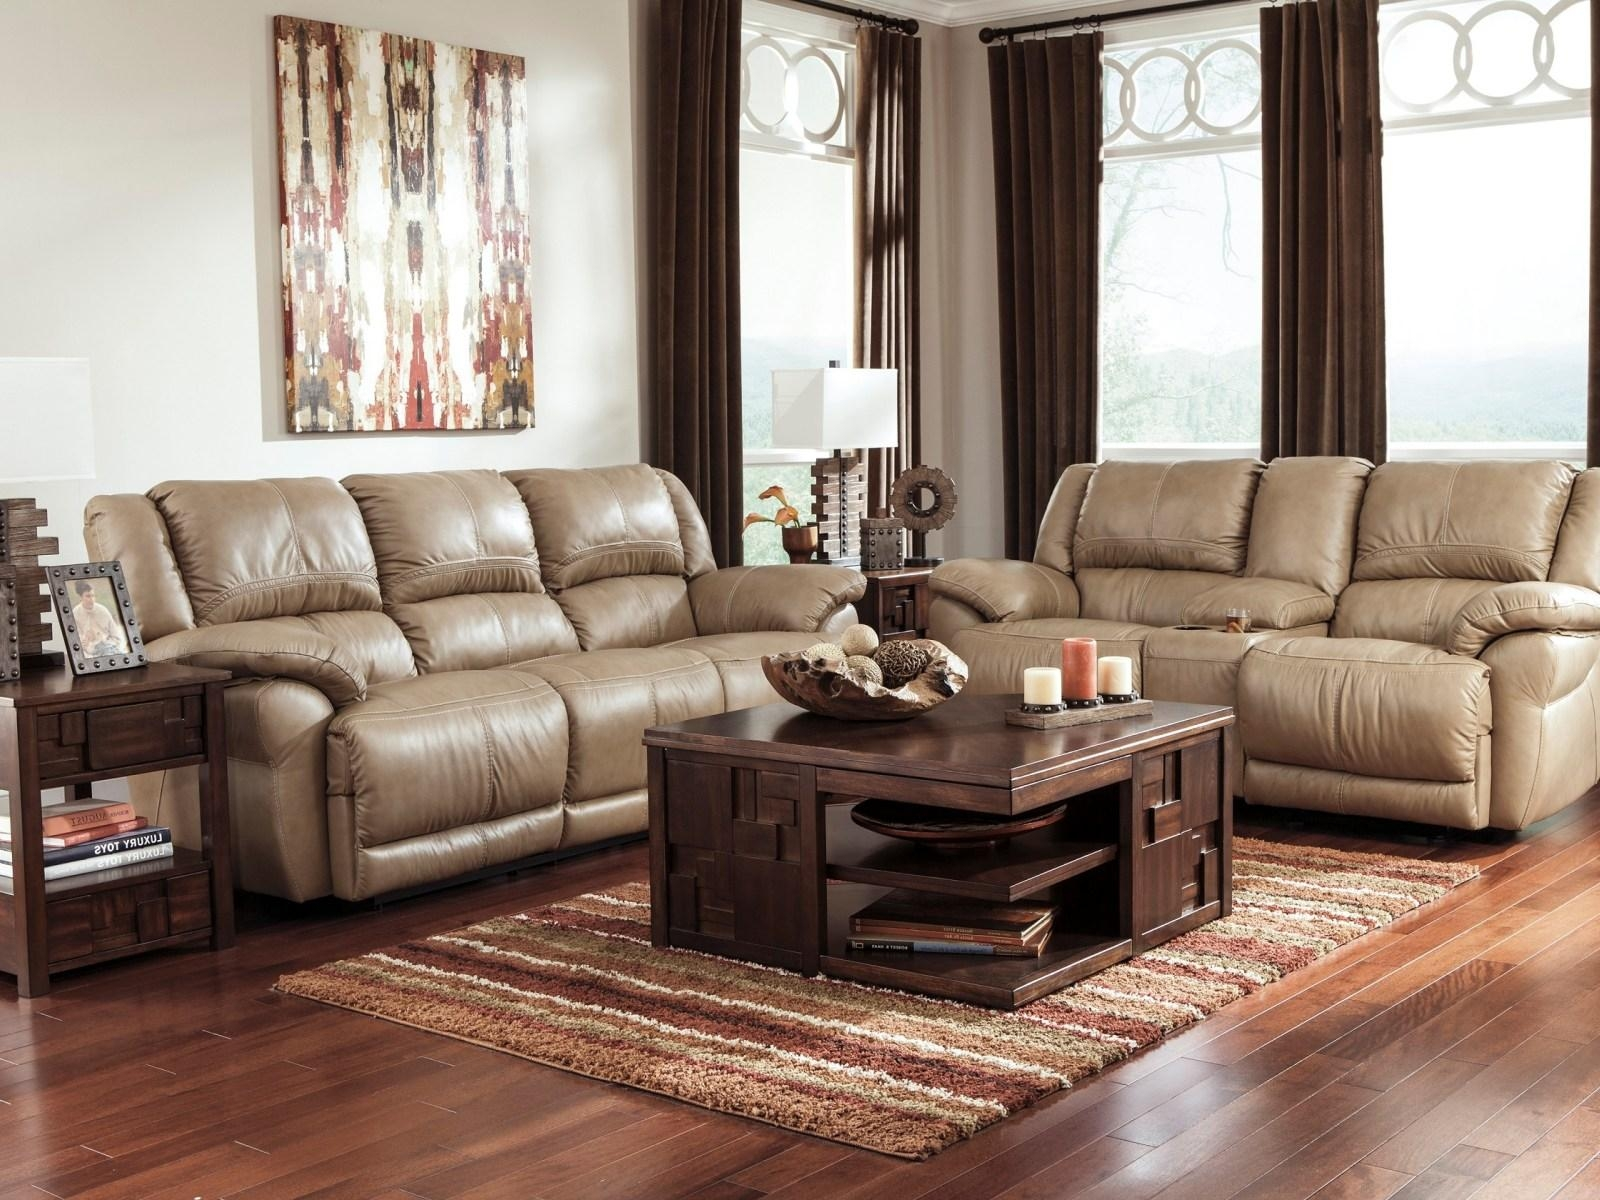 Sofas Center : Carmel Leather Sofa Sets Colored Sofas Caramel For Caramel Leather Sofas (View 8 of 20)